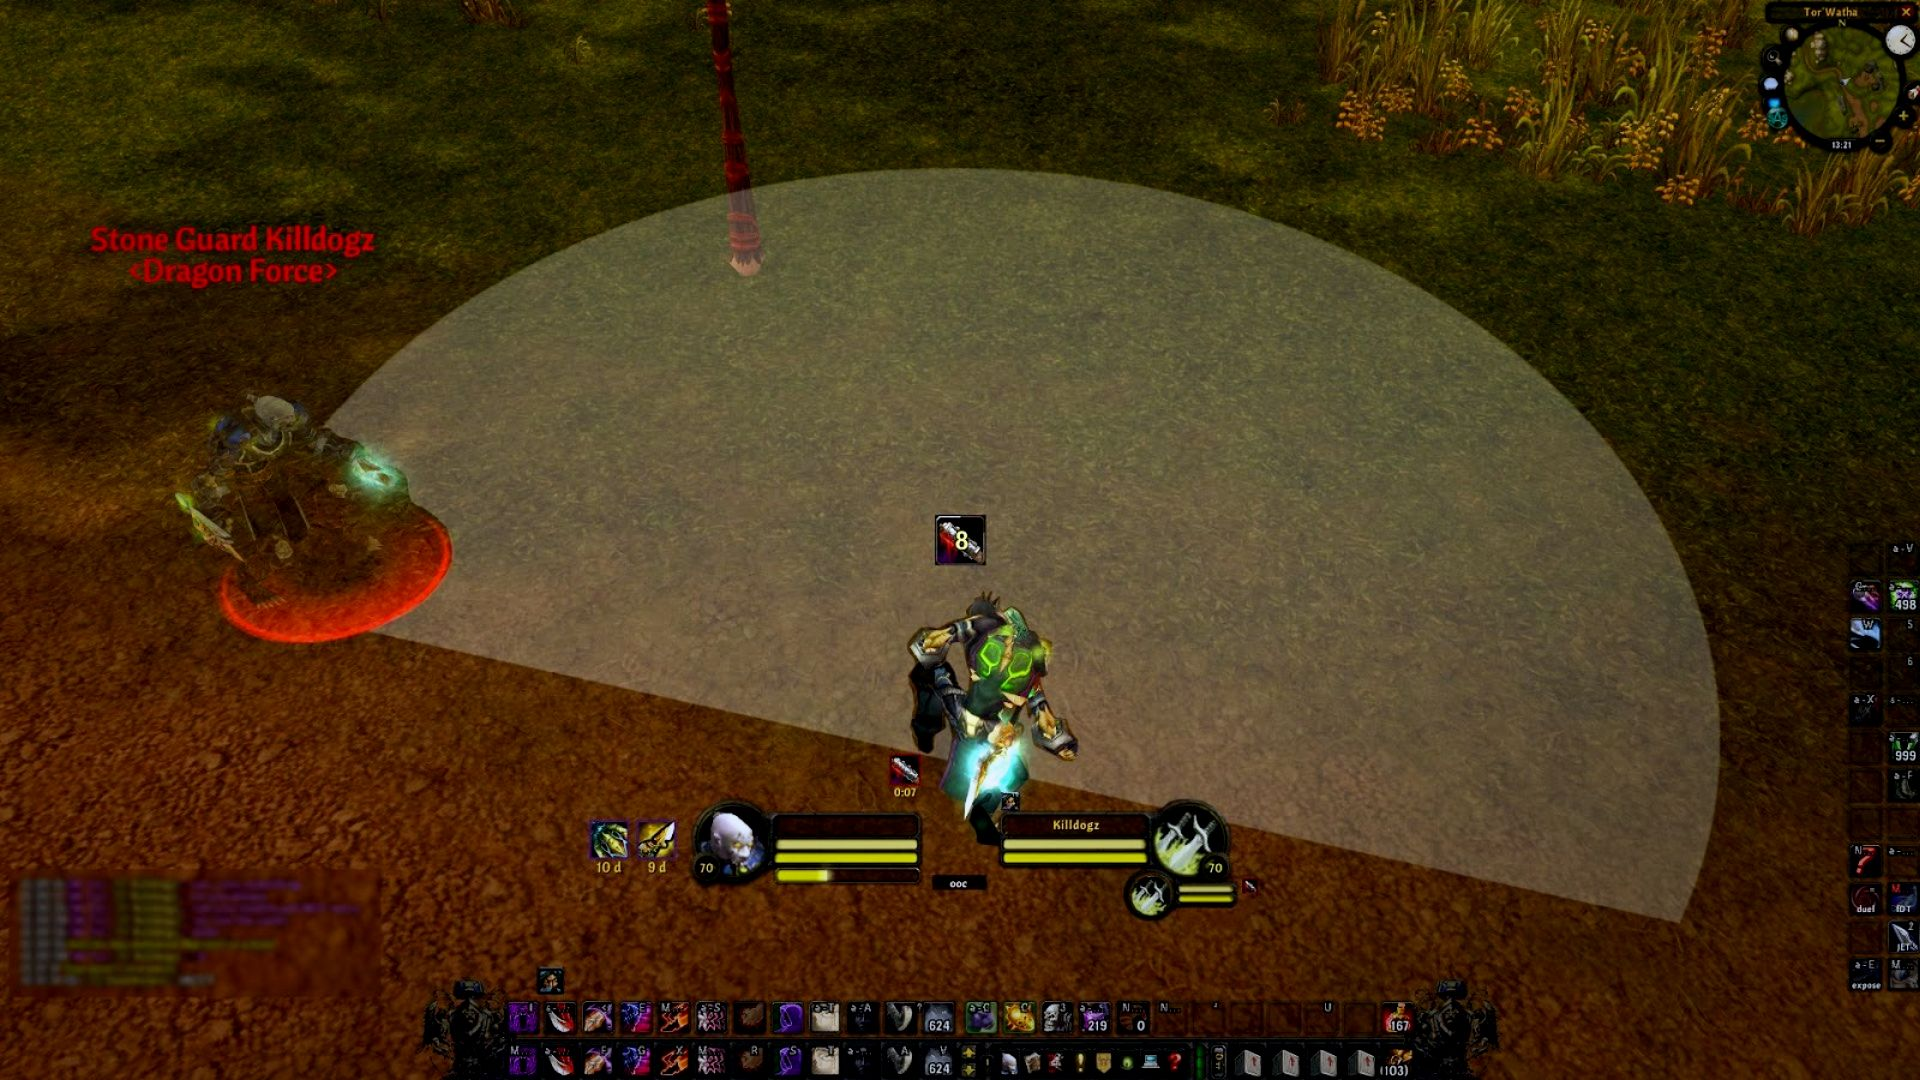 Stealthed rogue cone of vision on wow classic TBC